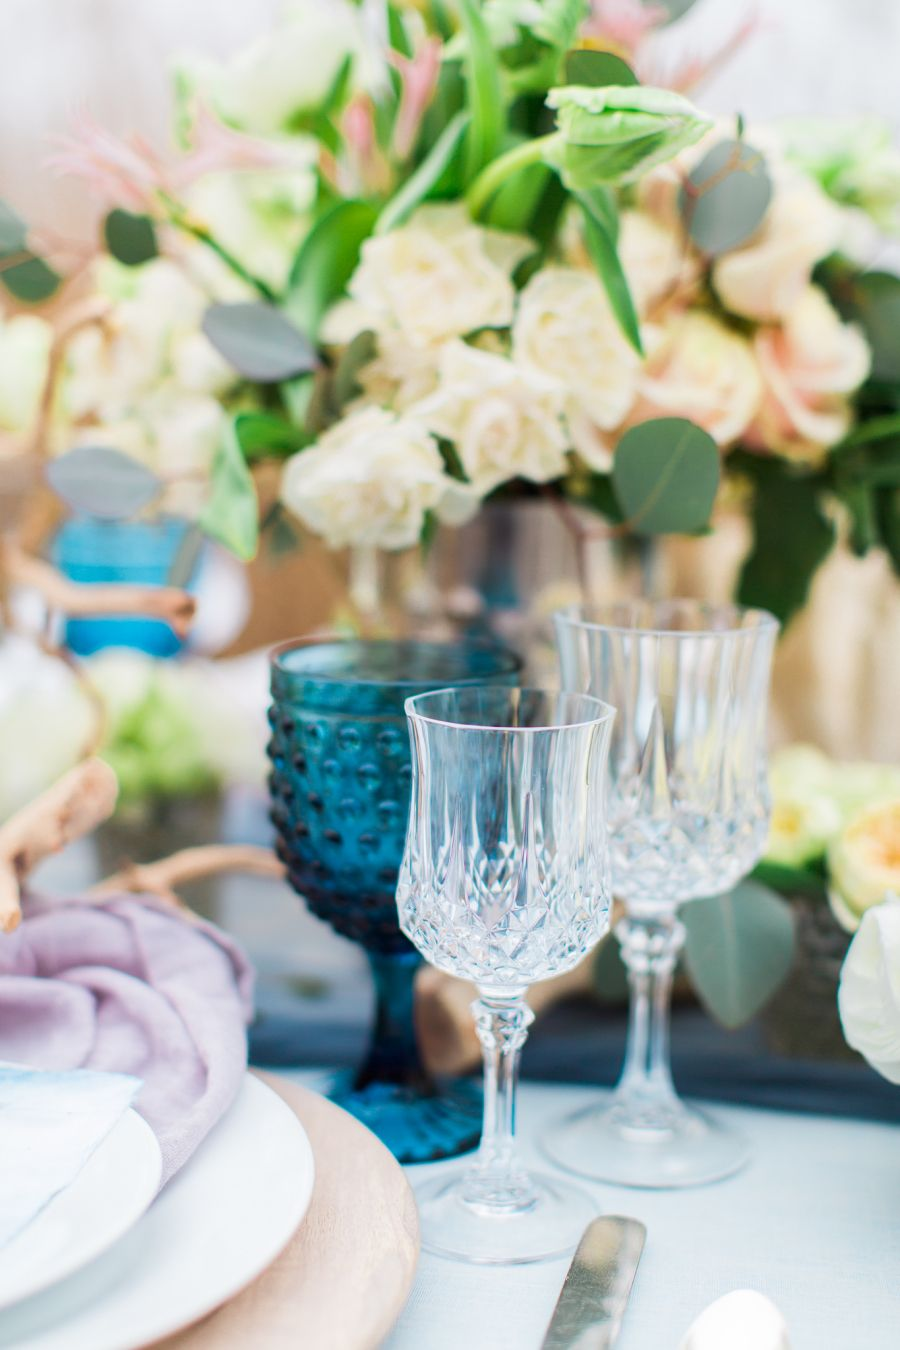 Textured and colored glassware -ABF